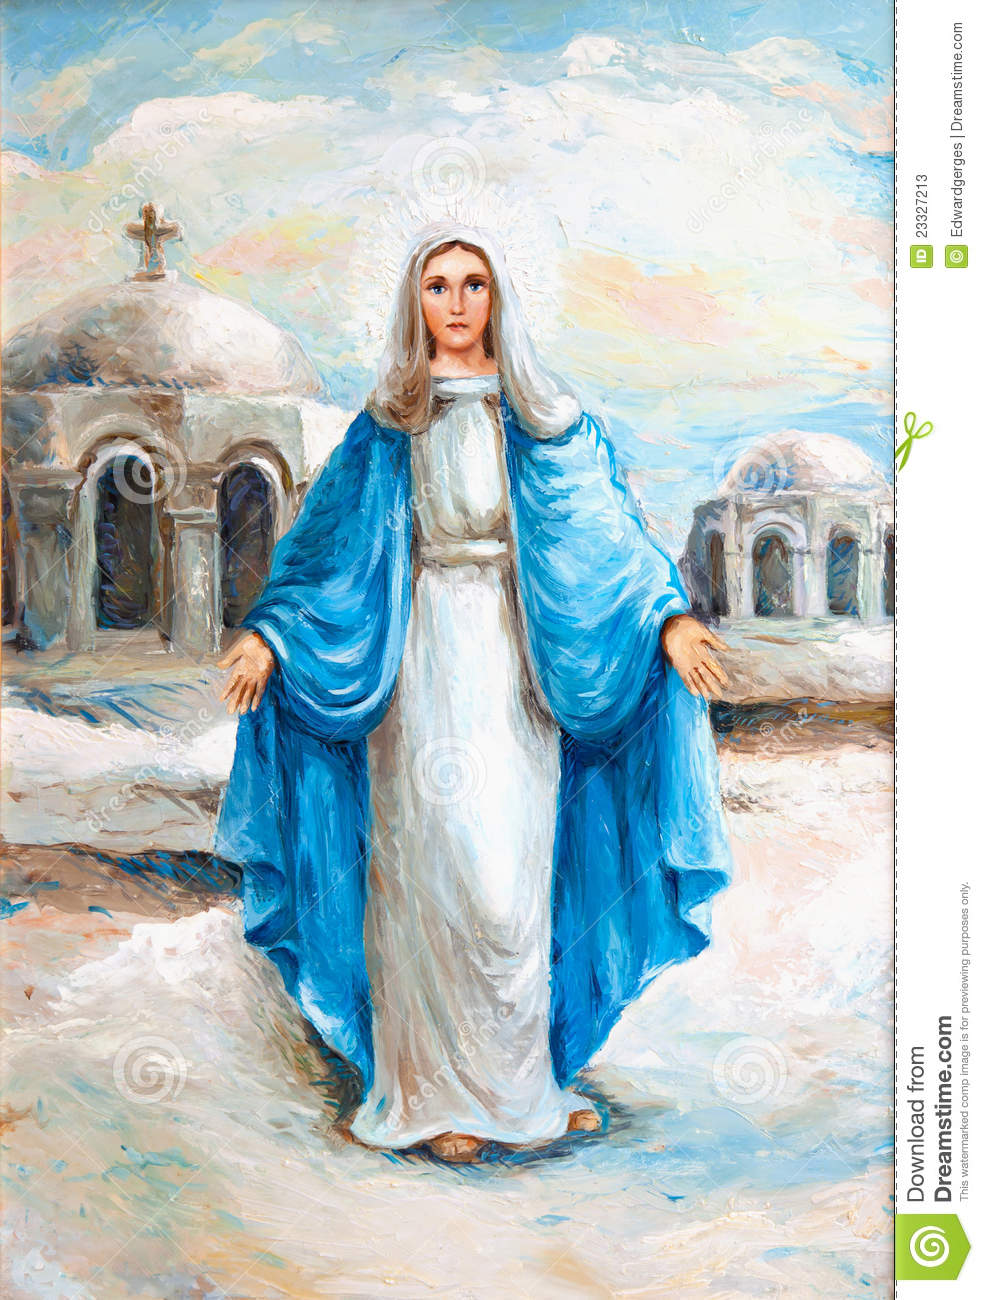 Virgin Mary Oil Painting Stock Photos - Image: 23327213